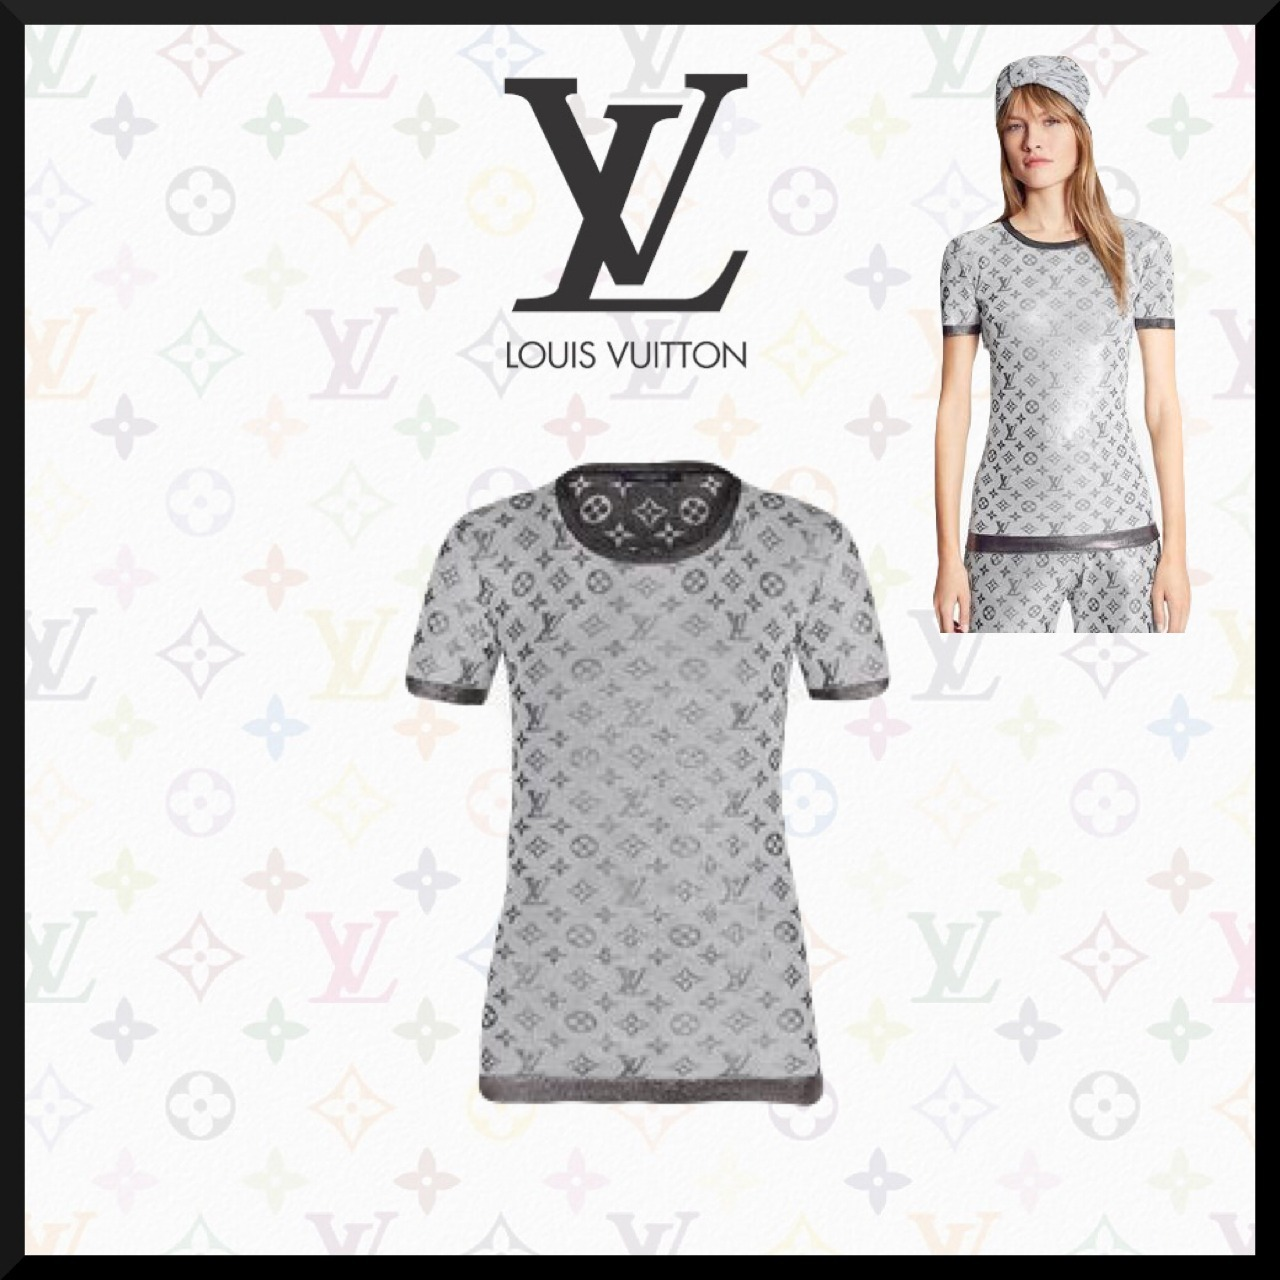 【Louis Vuitton】シャイニーモノグラム◆ニットトップ (Louis Vuitton/Tシャツ・カットソー) 1A8RQK